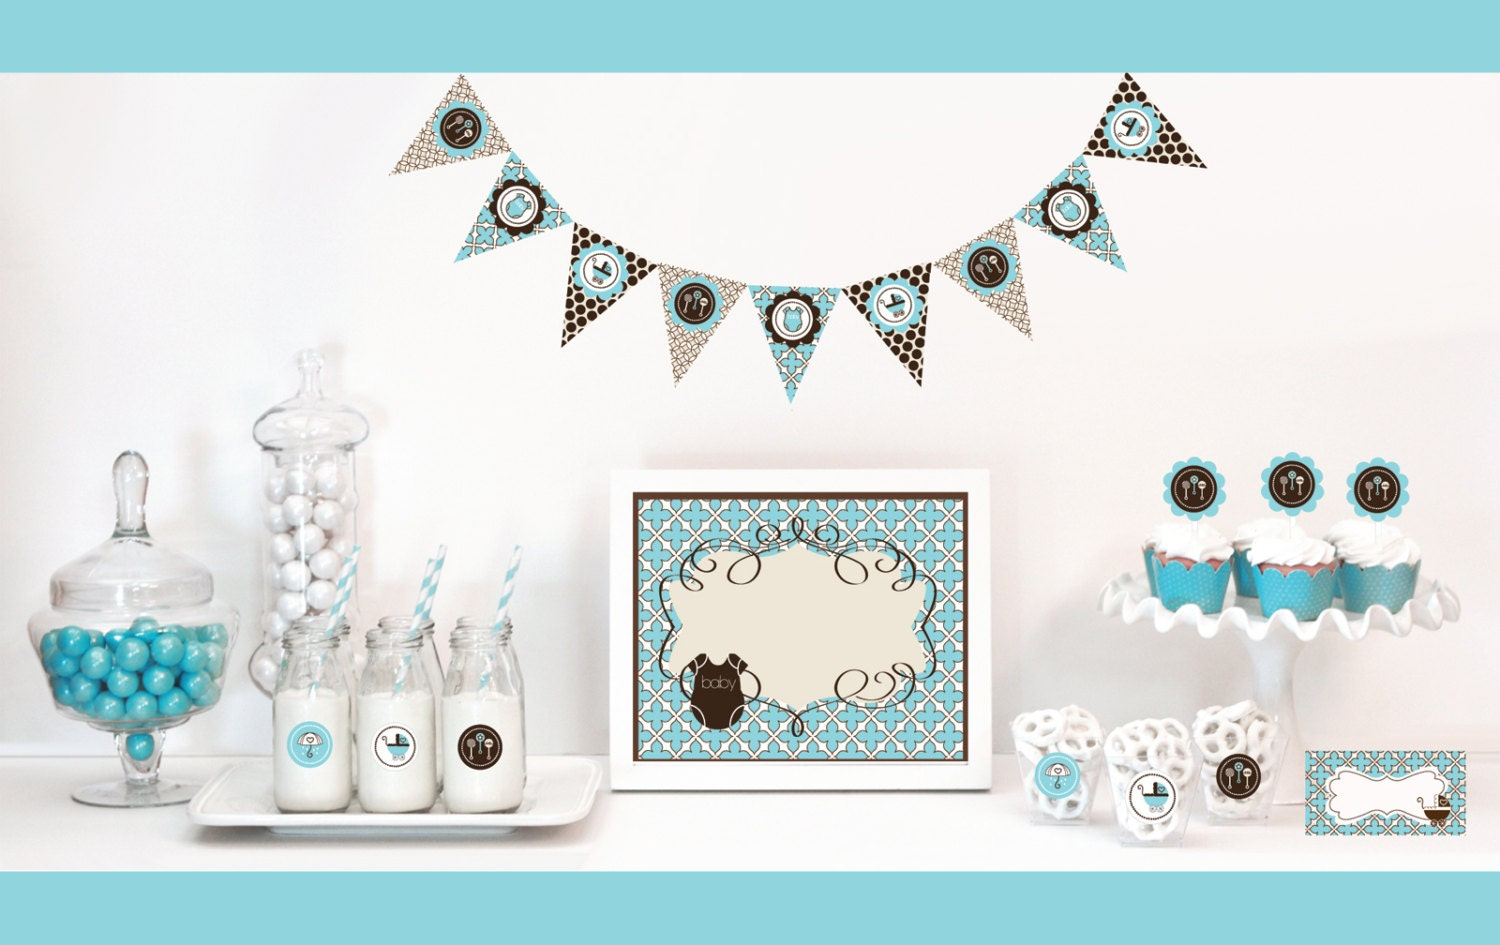 popular items for baby shower ideas on etsy baby shower ideas for boys